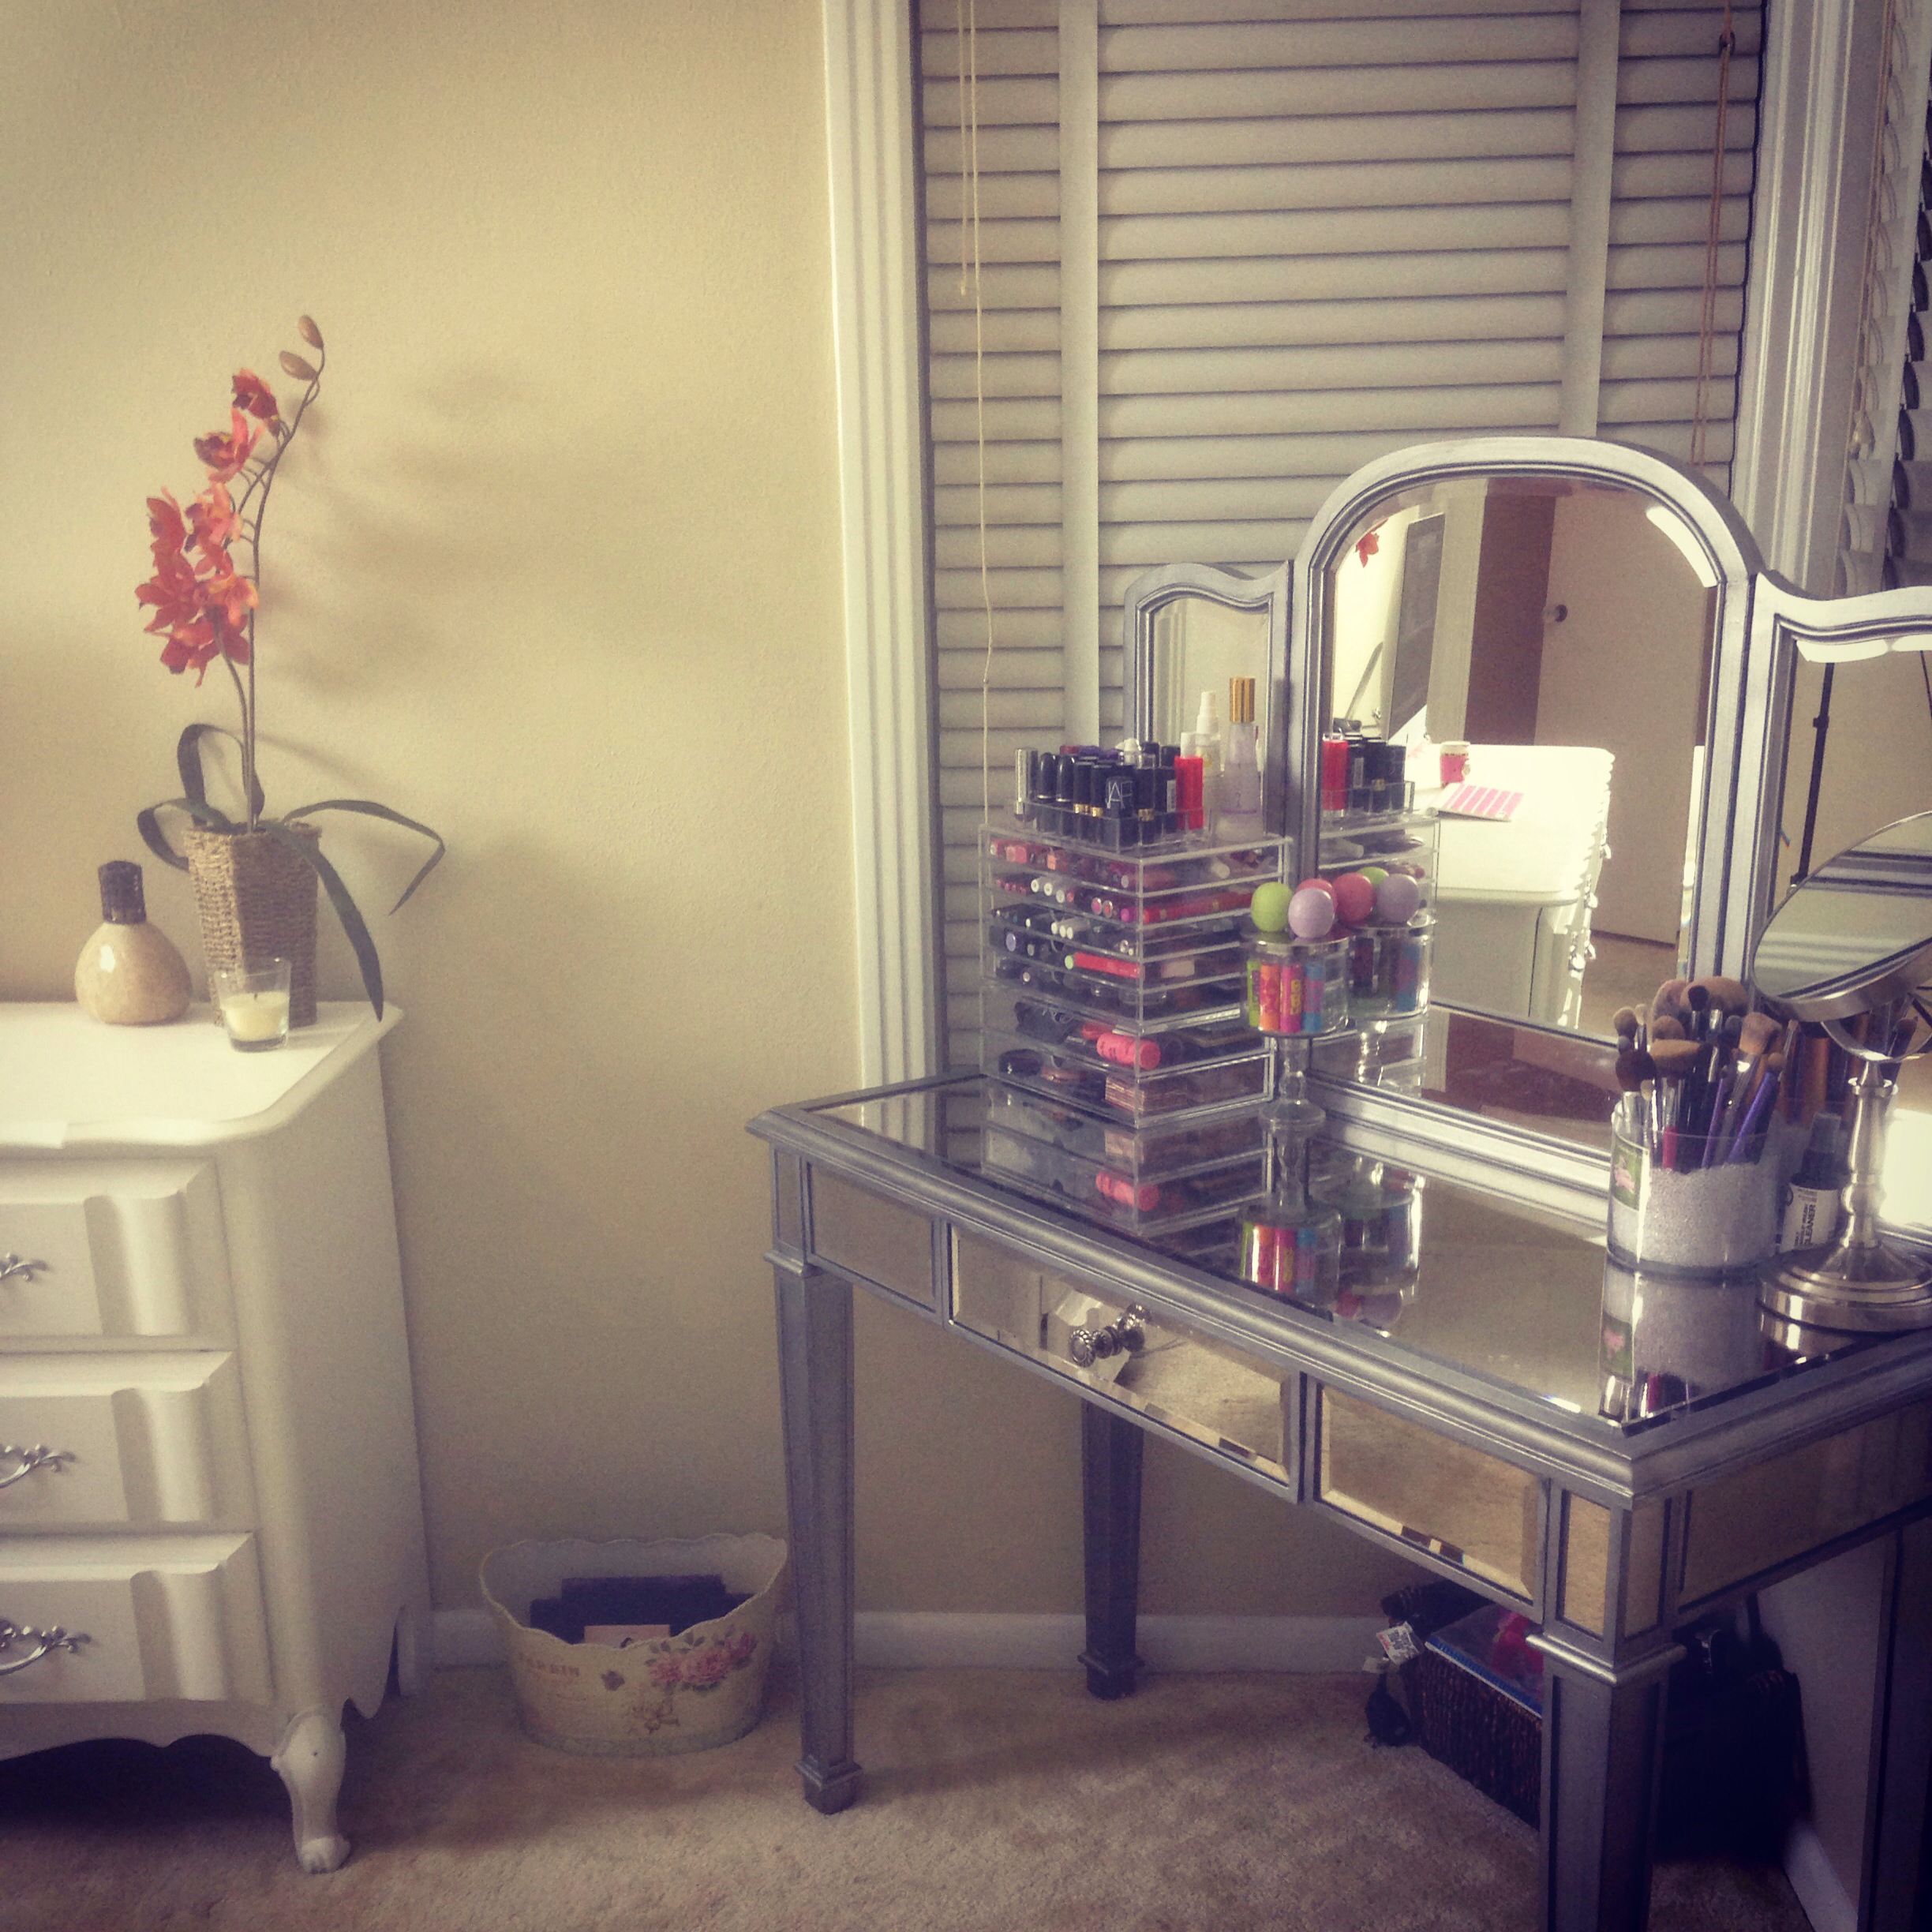 Awesome hayworth vanity mirrored vanity and ikea vanity also ikea rug hayworth rug ideas